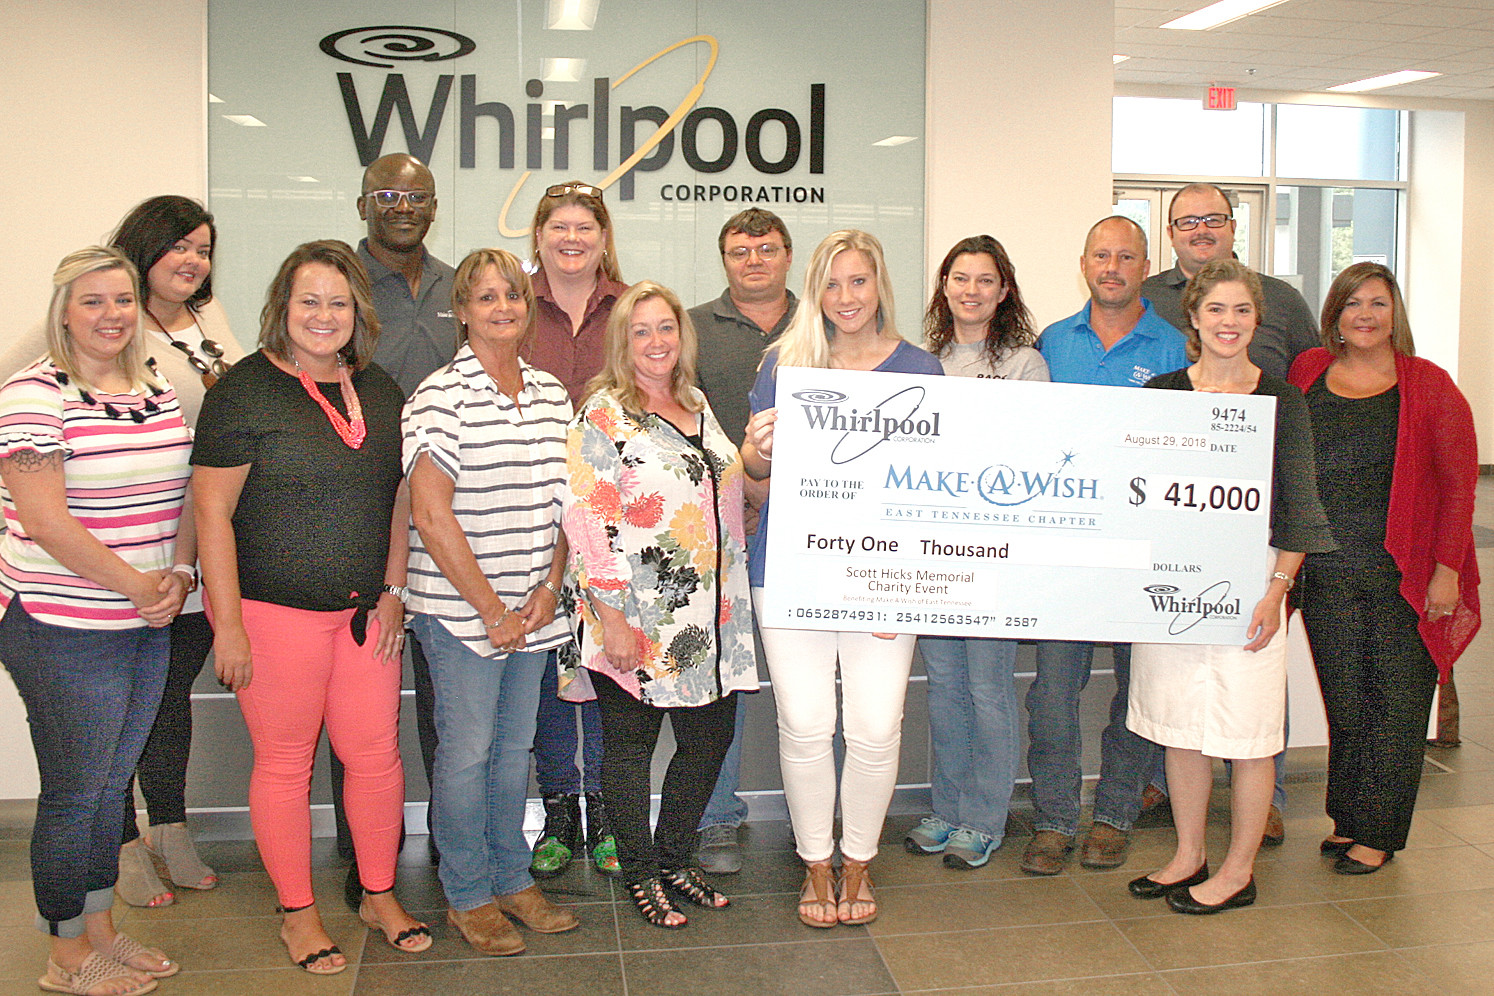 A CHECK is presented to Make-A-Wish of East Tennessee by Whirlpool's staff. The check was for $41,000, and will go back into helping Make-A-Wish fulfill wishes for local kids with life-threatening illnesses. Fundraising will start up again following the commencement of the new year in 2019.